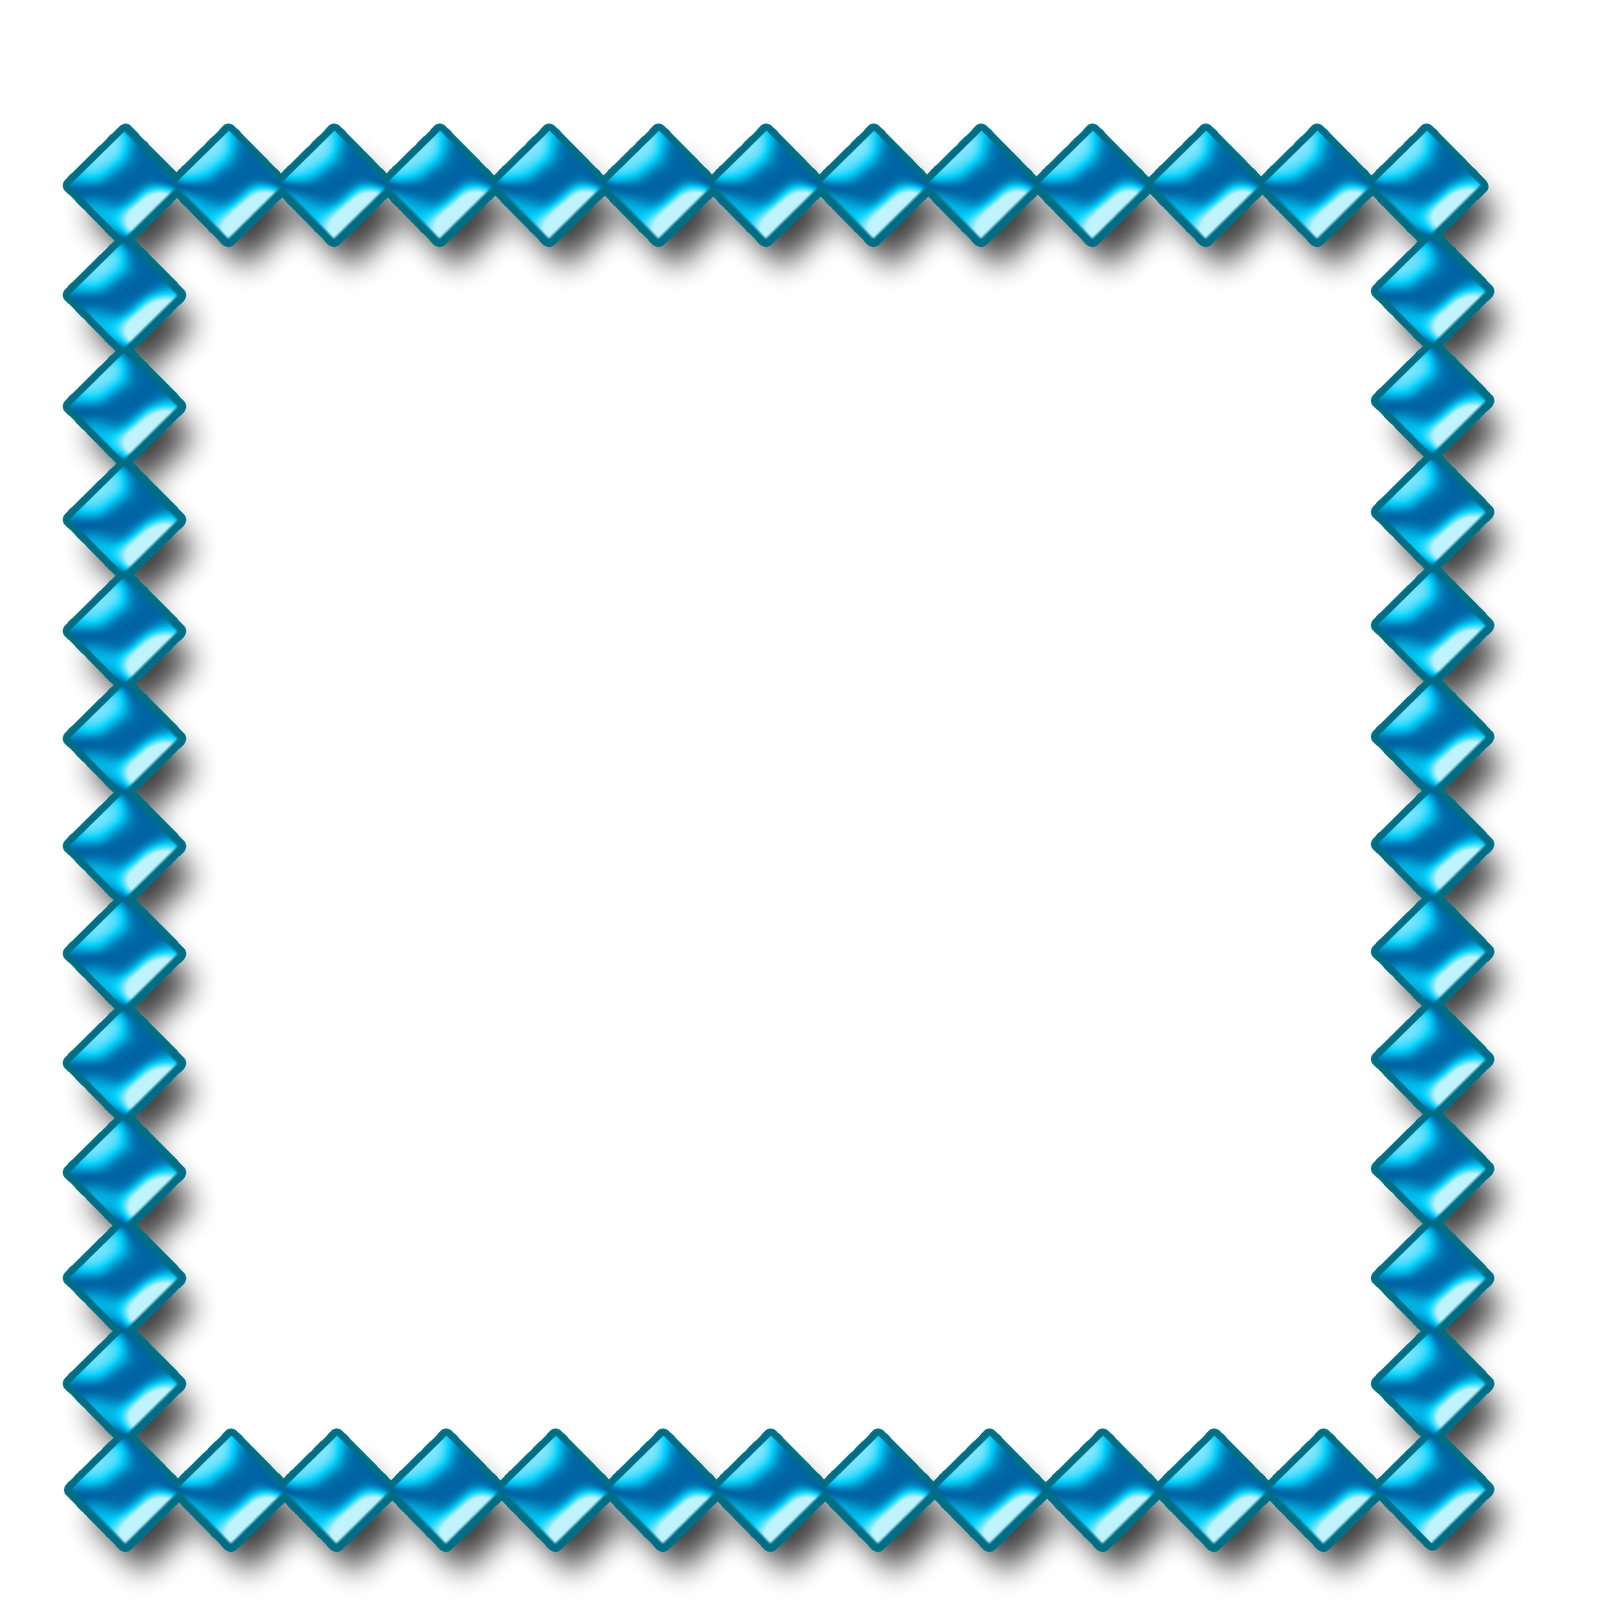 Molduras png para photoshop. Blue frame bordas fundo